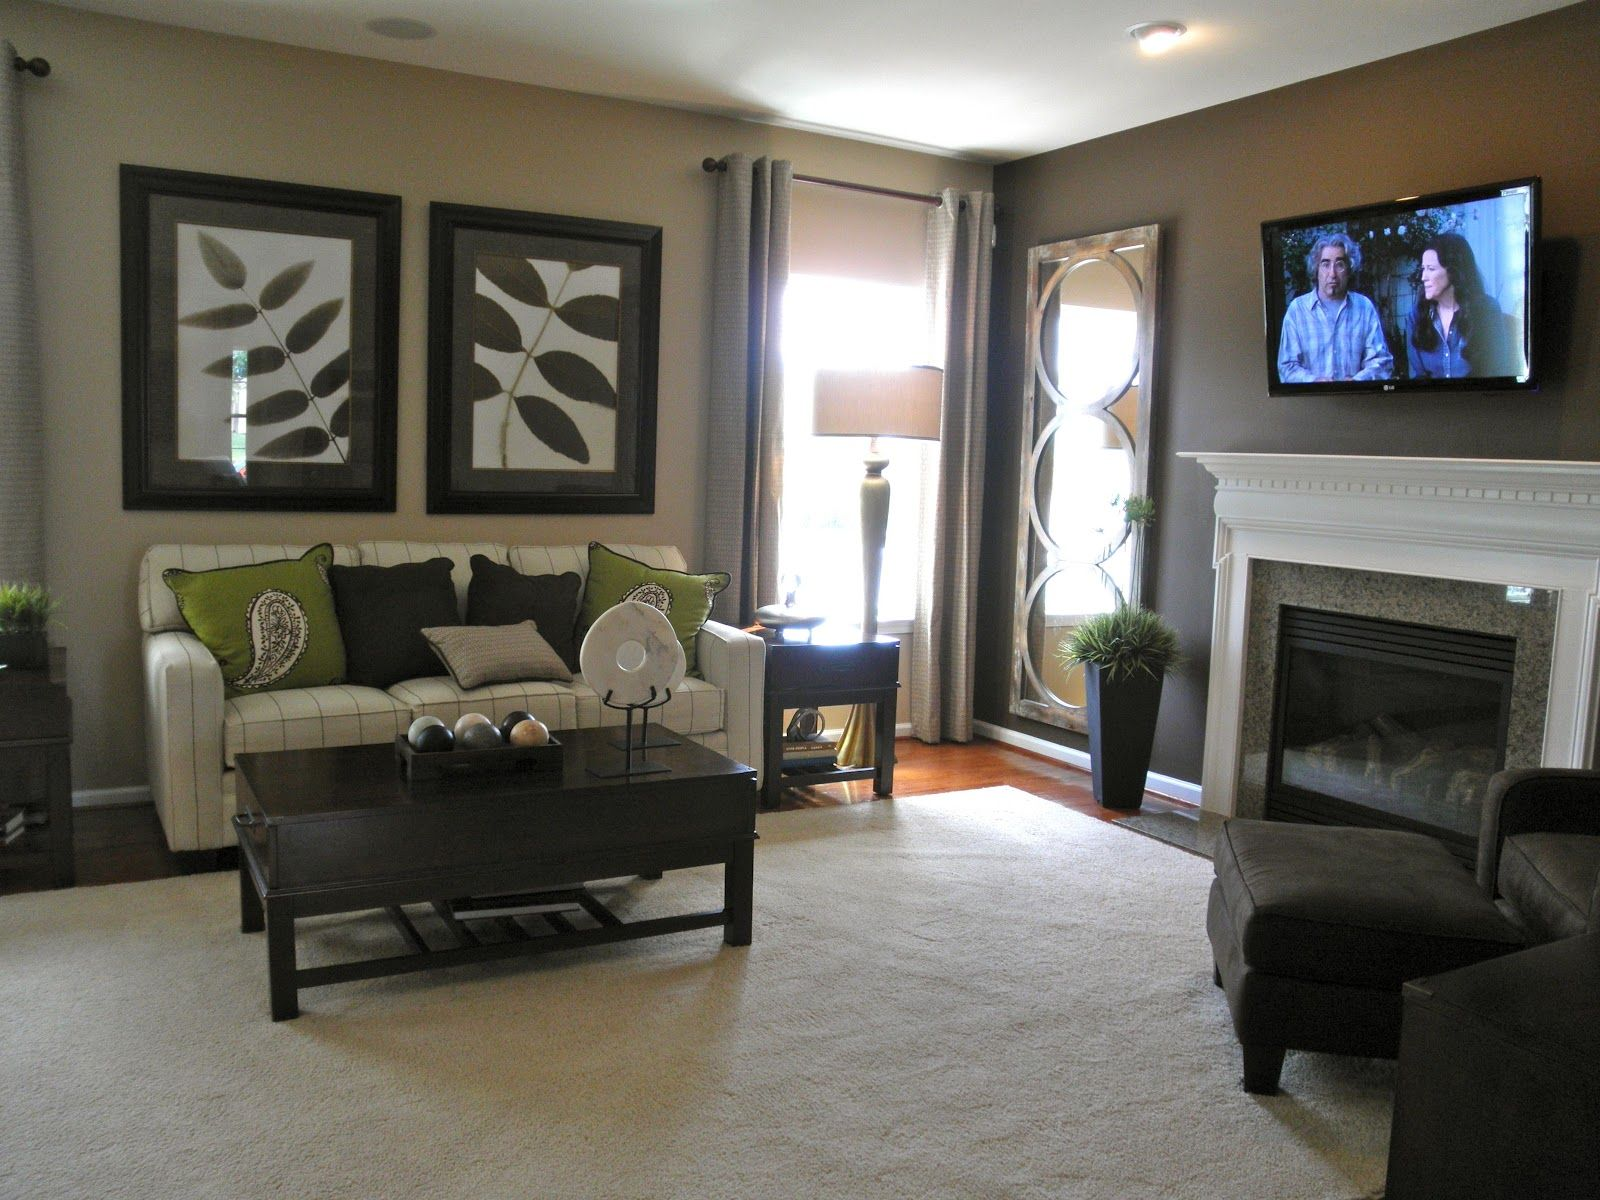 Venice model ryan homes florence model pictures for the home pinterest model pictures - Small living room spaces model ...